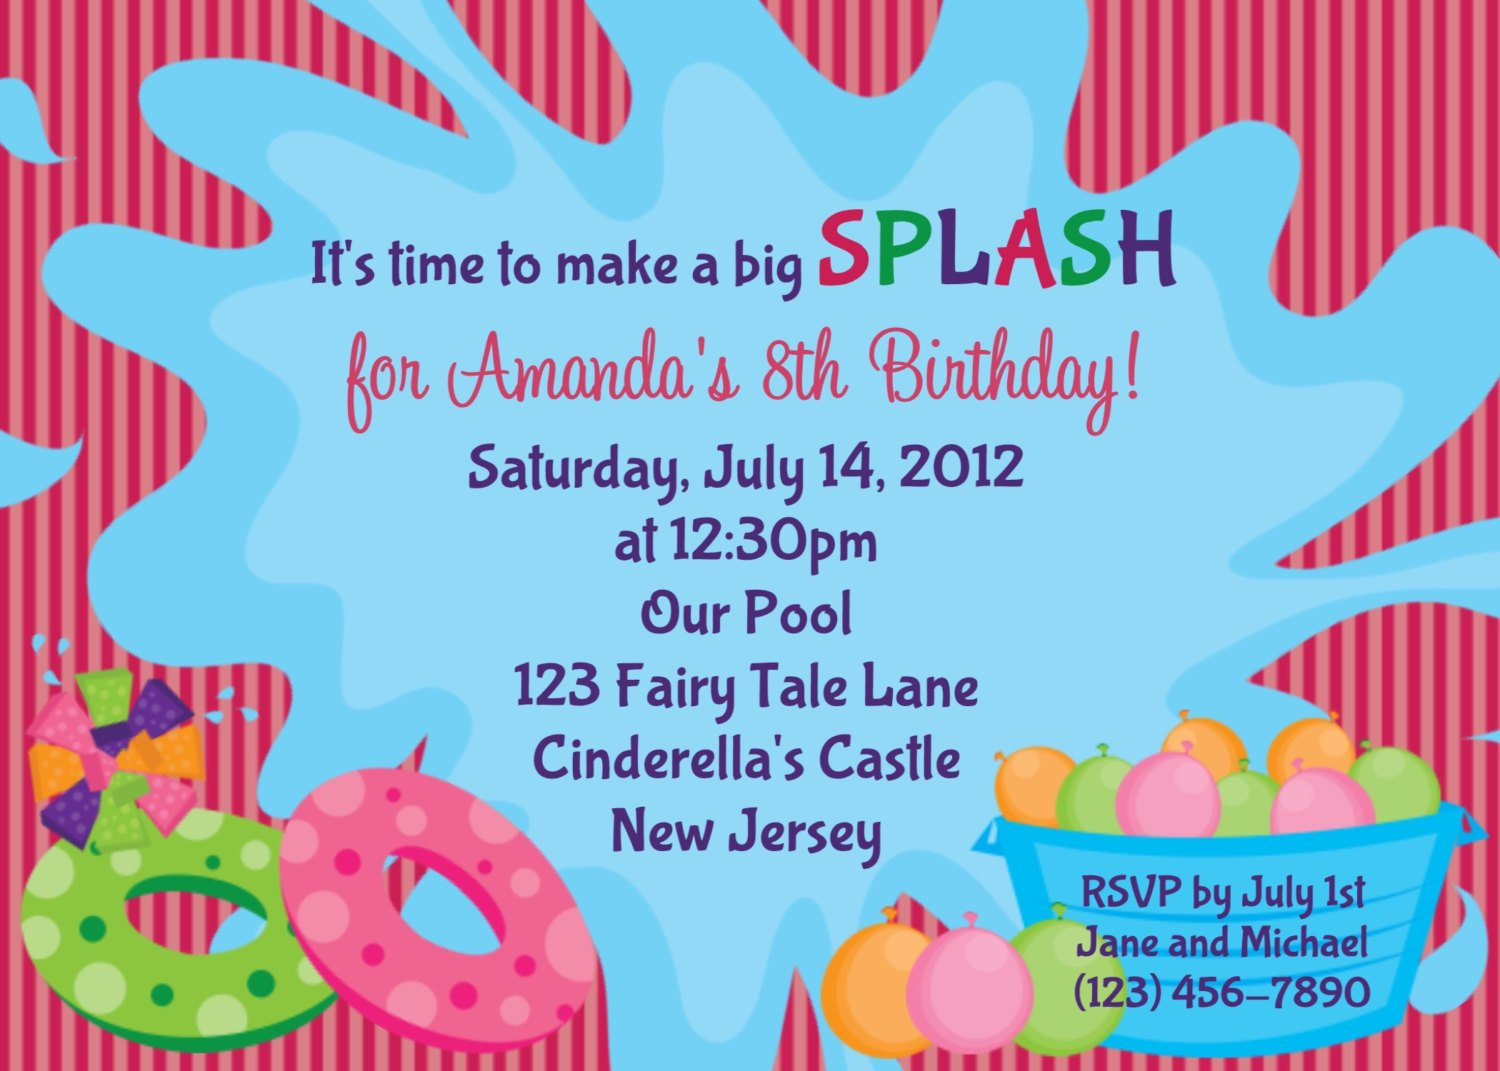 Pool party birthday party invitations templates free download pool party birthday party invitations templates free download filmwisefo